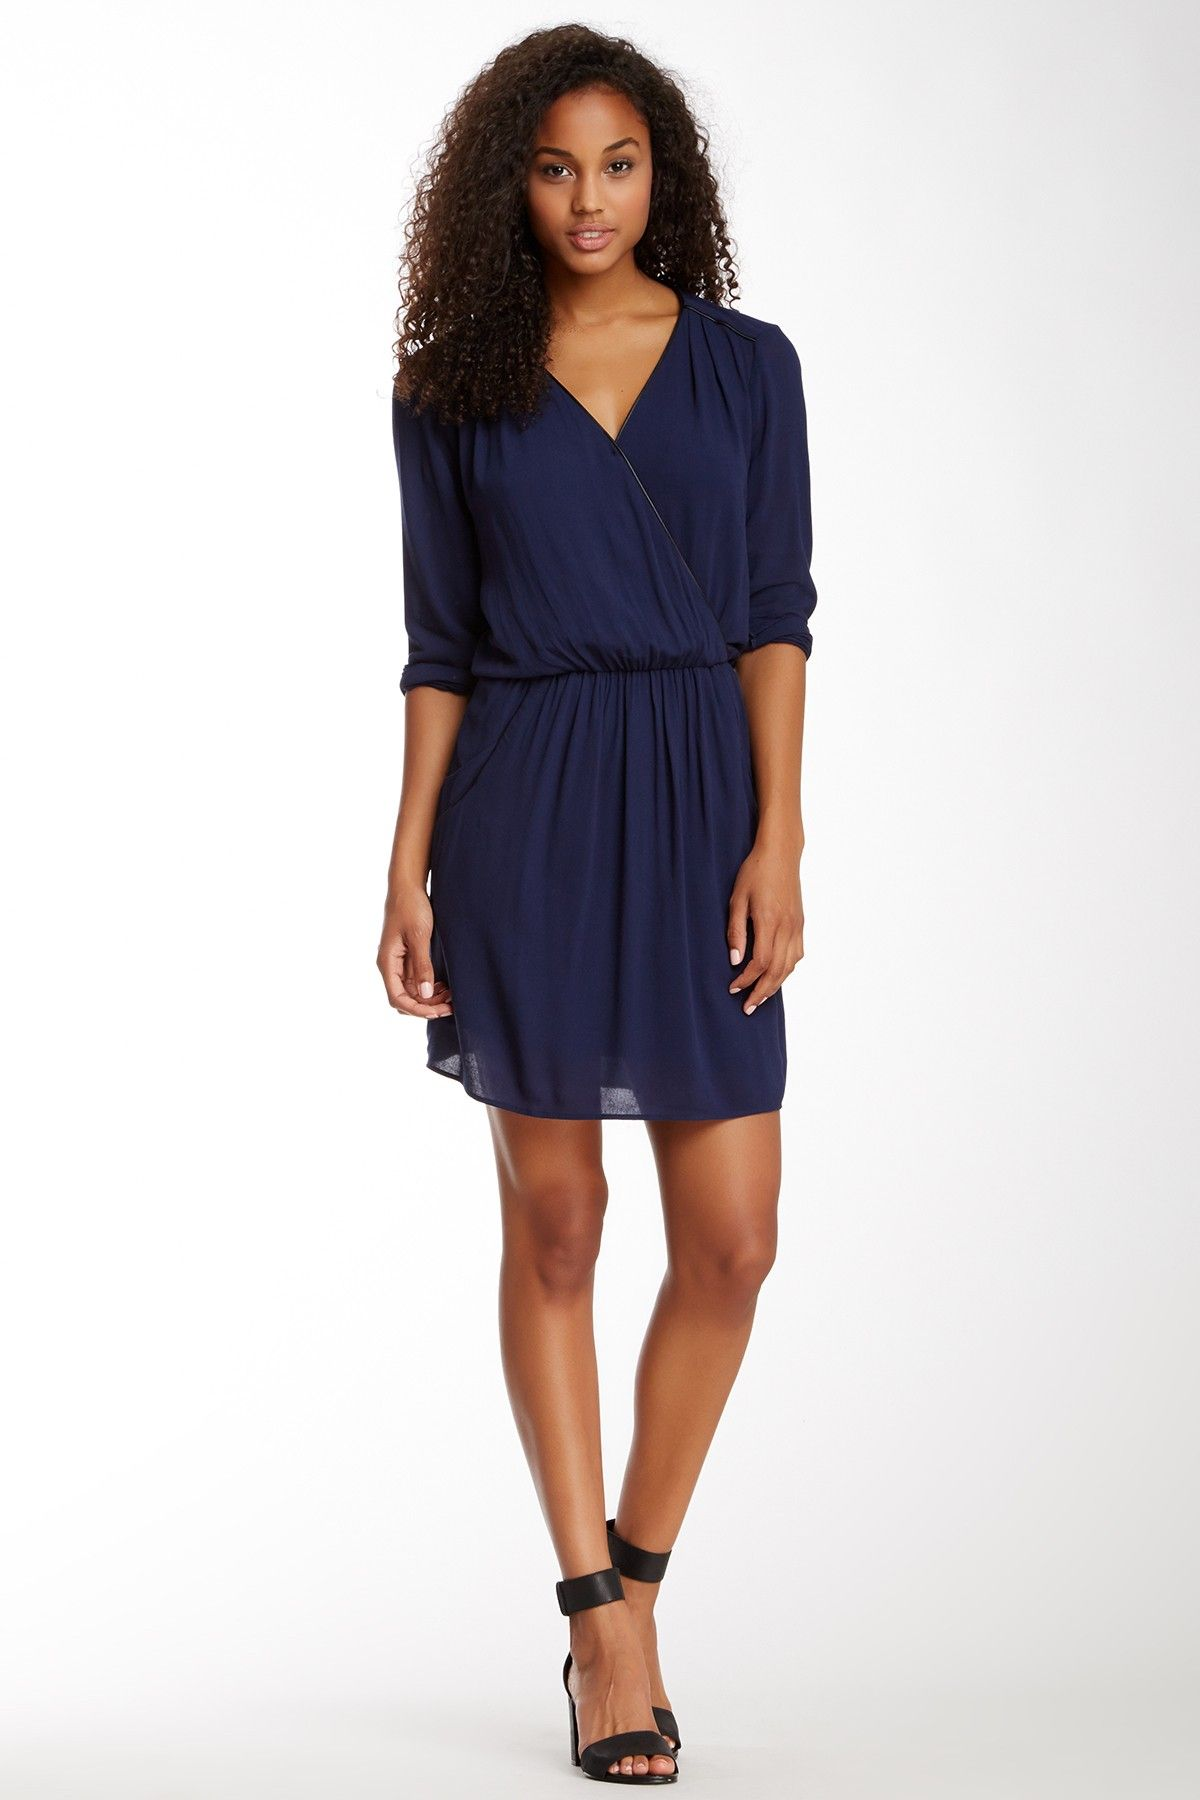 Ella moss long sleeve dress wearable shop shop shop pinterest